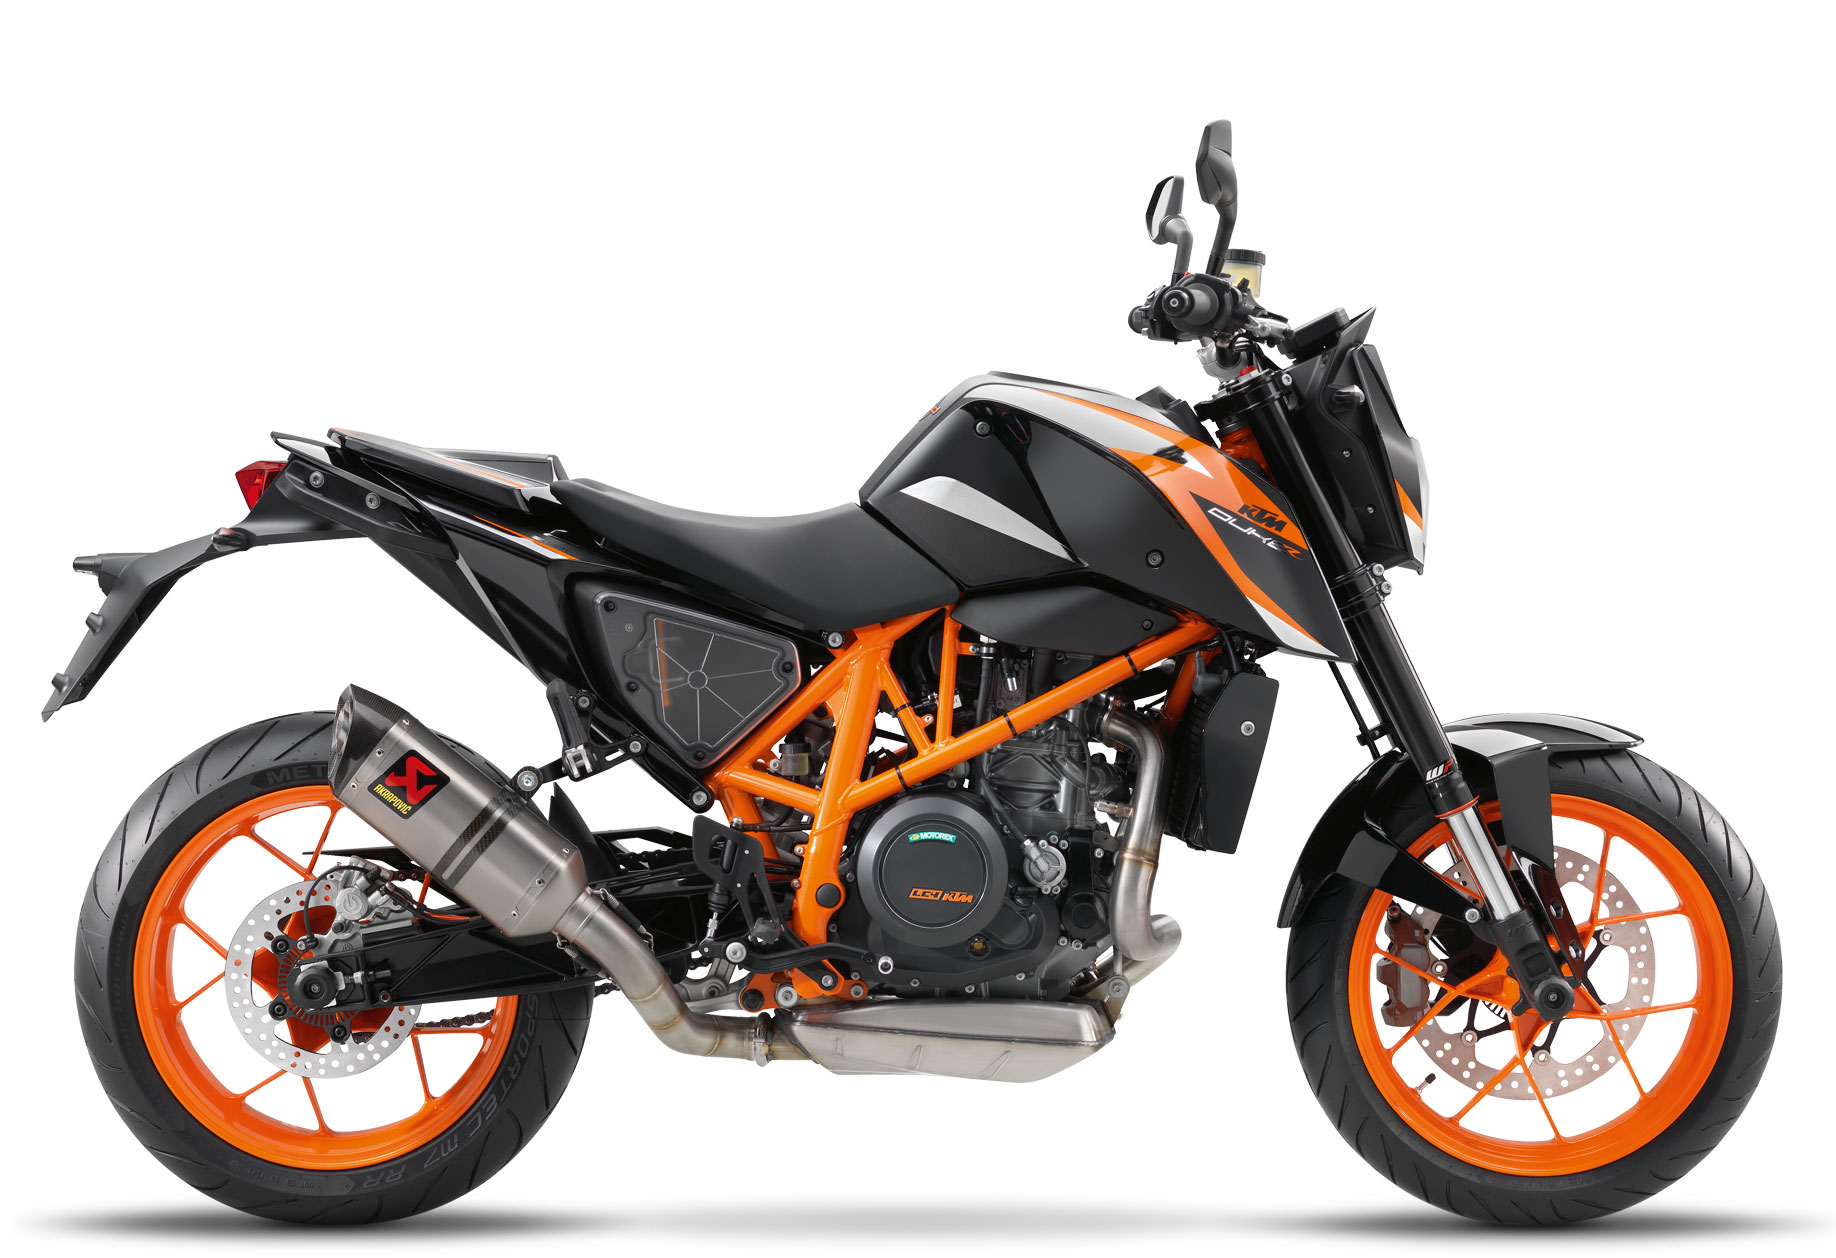 ktm 690 duke r specs 2016 2017 2018 2019 autoevolution. Black Bedroom Furniture Sets. Home Design Ideas